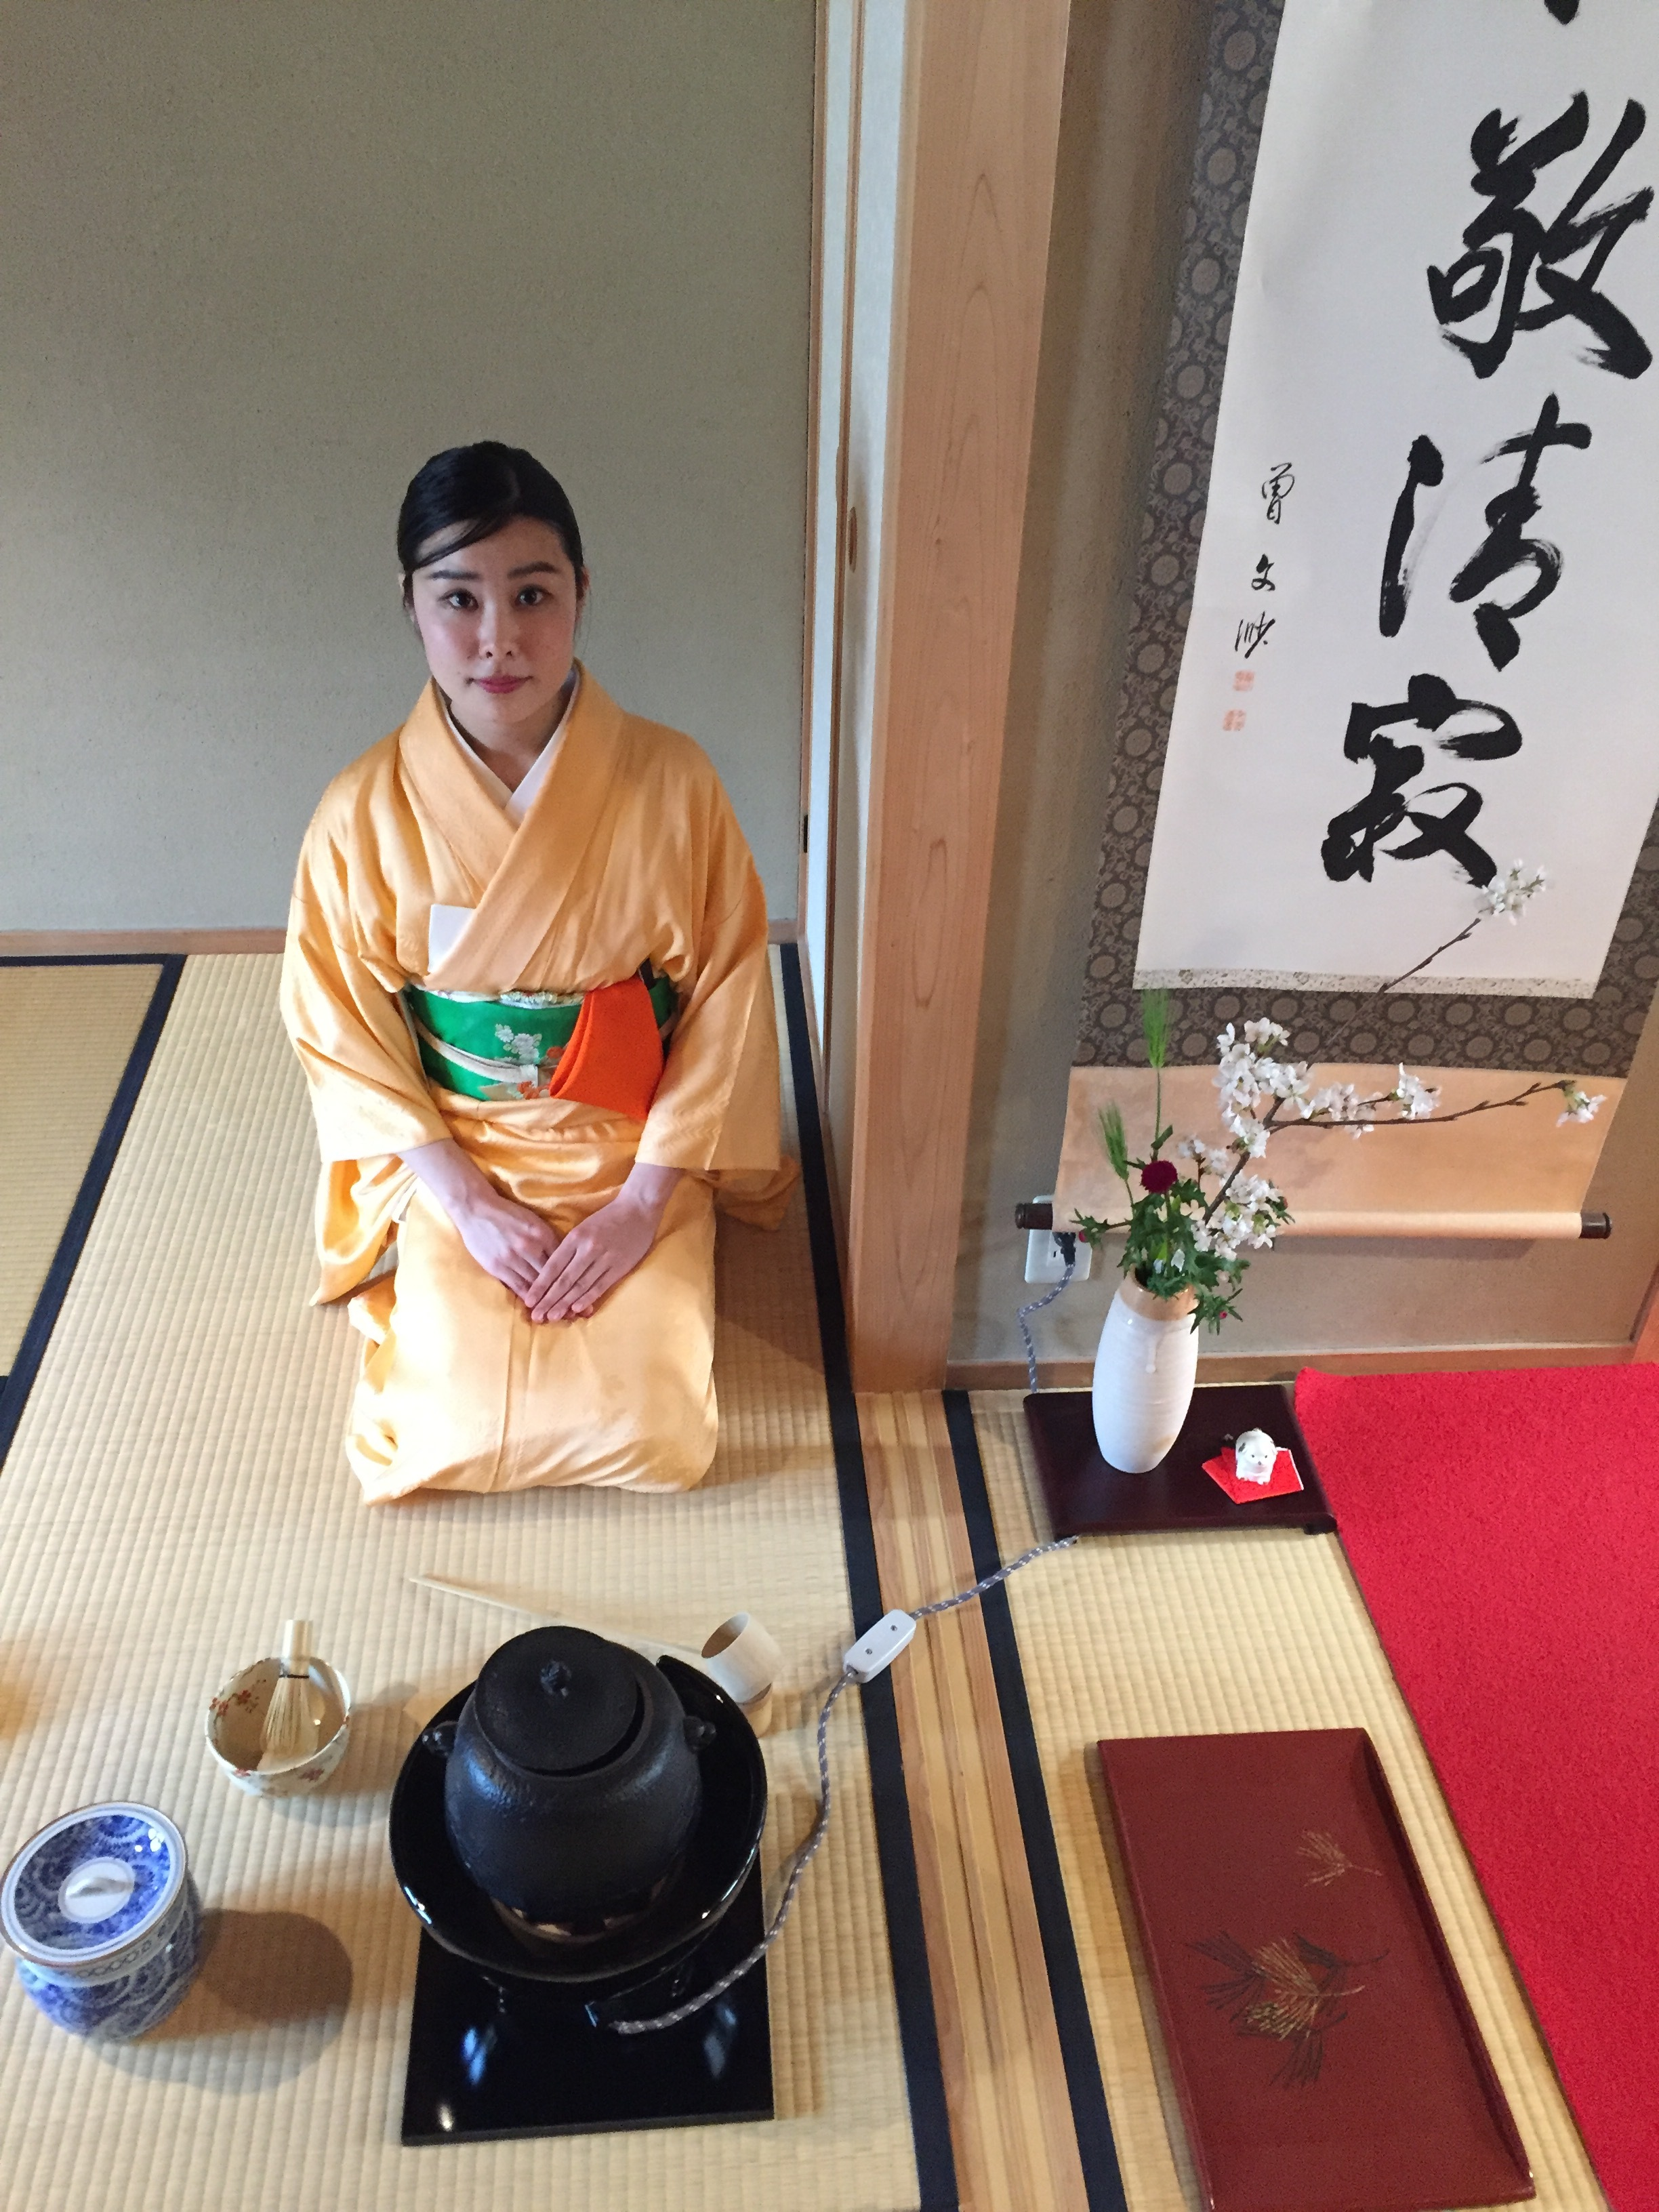 Ceremony and ritual  | EAT.PRAY.MOVE Yoga | Kyoto, Japan